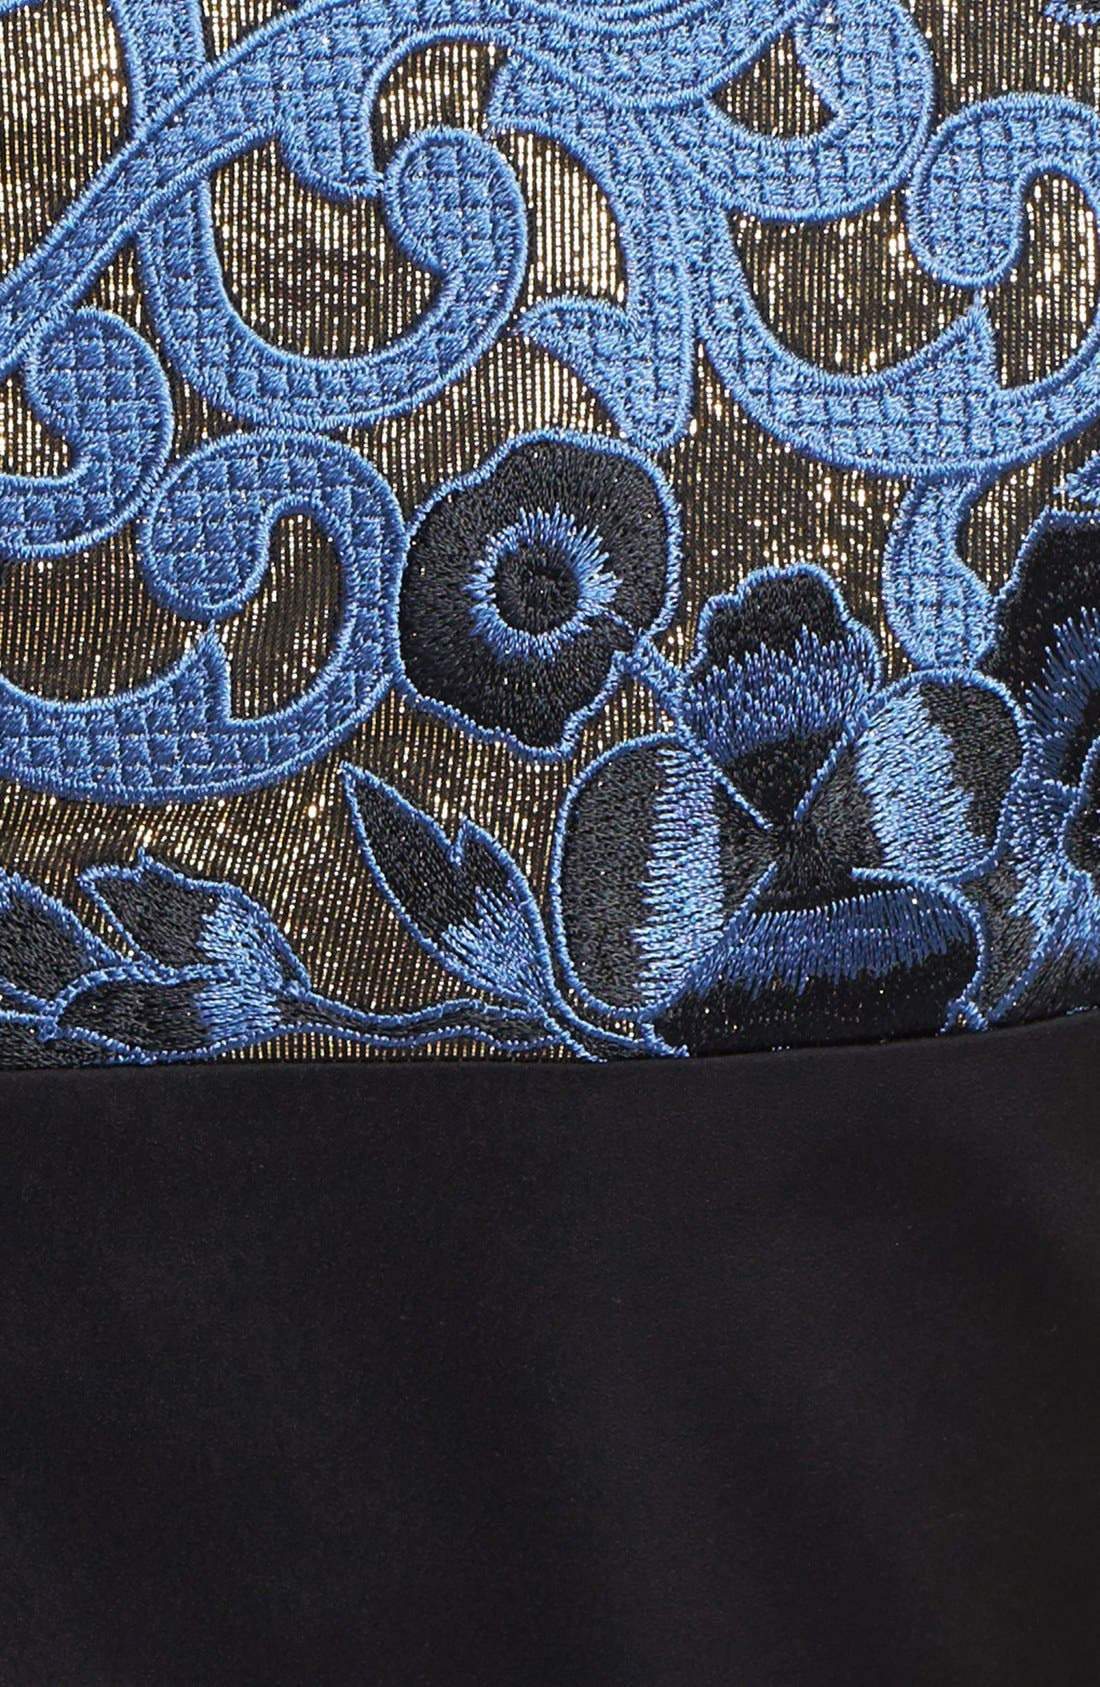 Alternate Image 3  - ERIN erin fetherston 'Clemence' Embroidery Embellished Gown